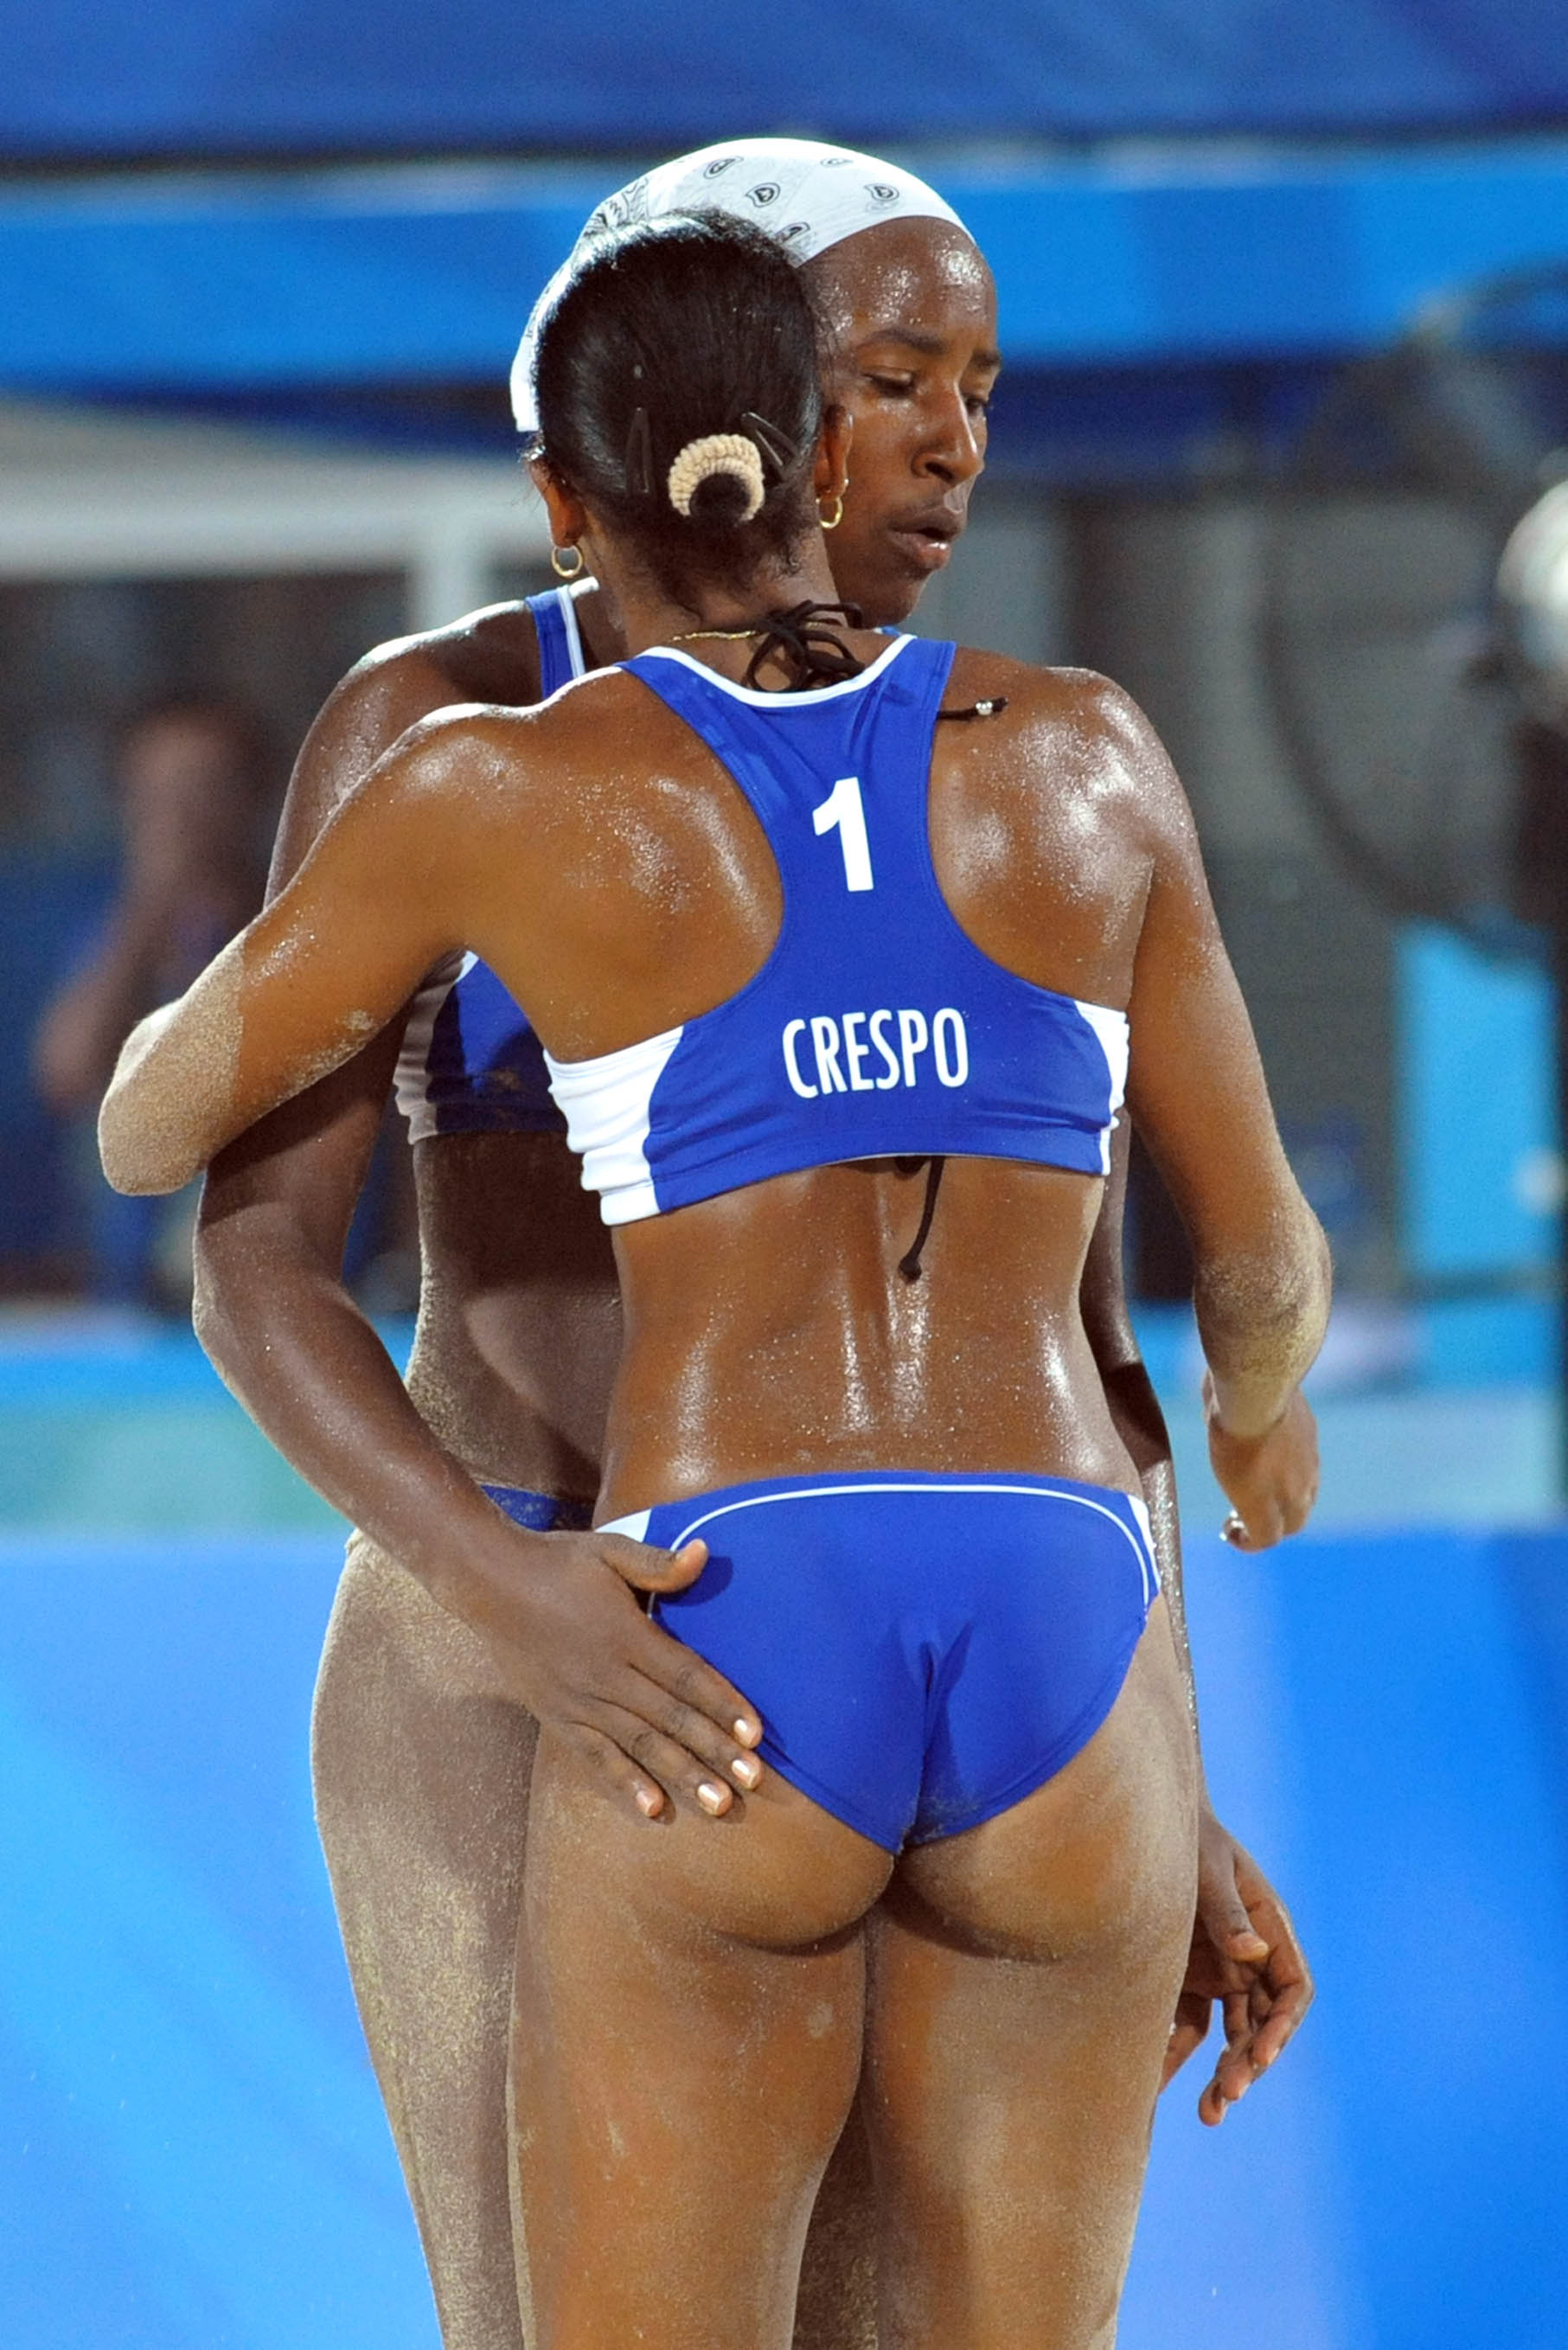 Thread: Cuban Women's Beach Volleyball Team!!!